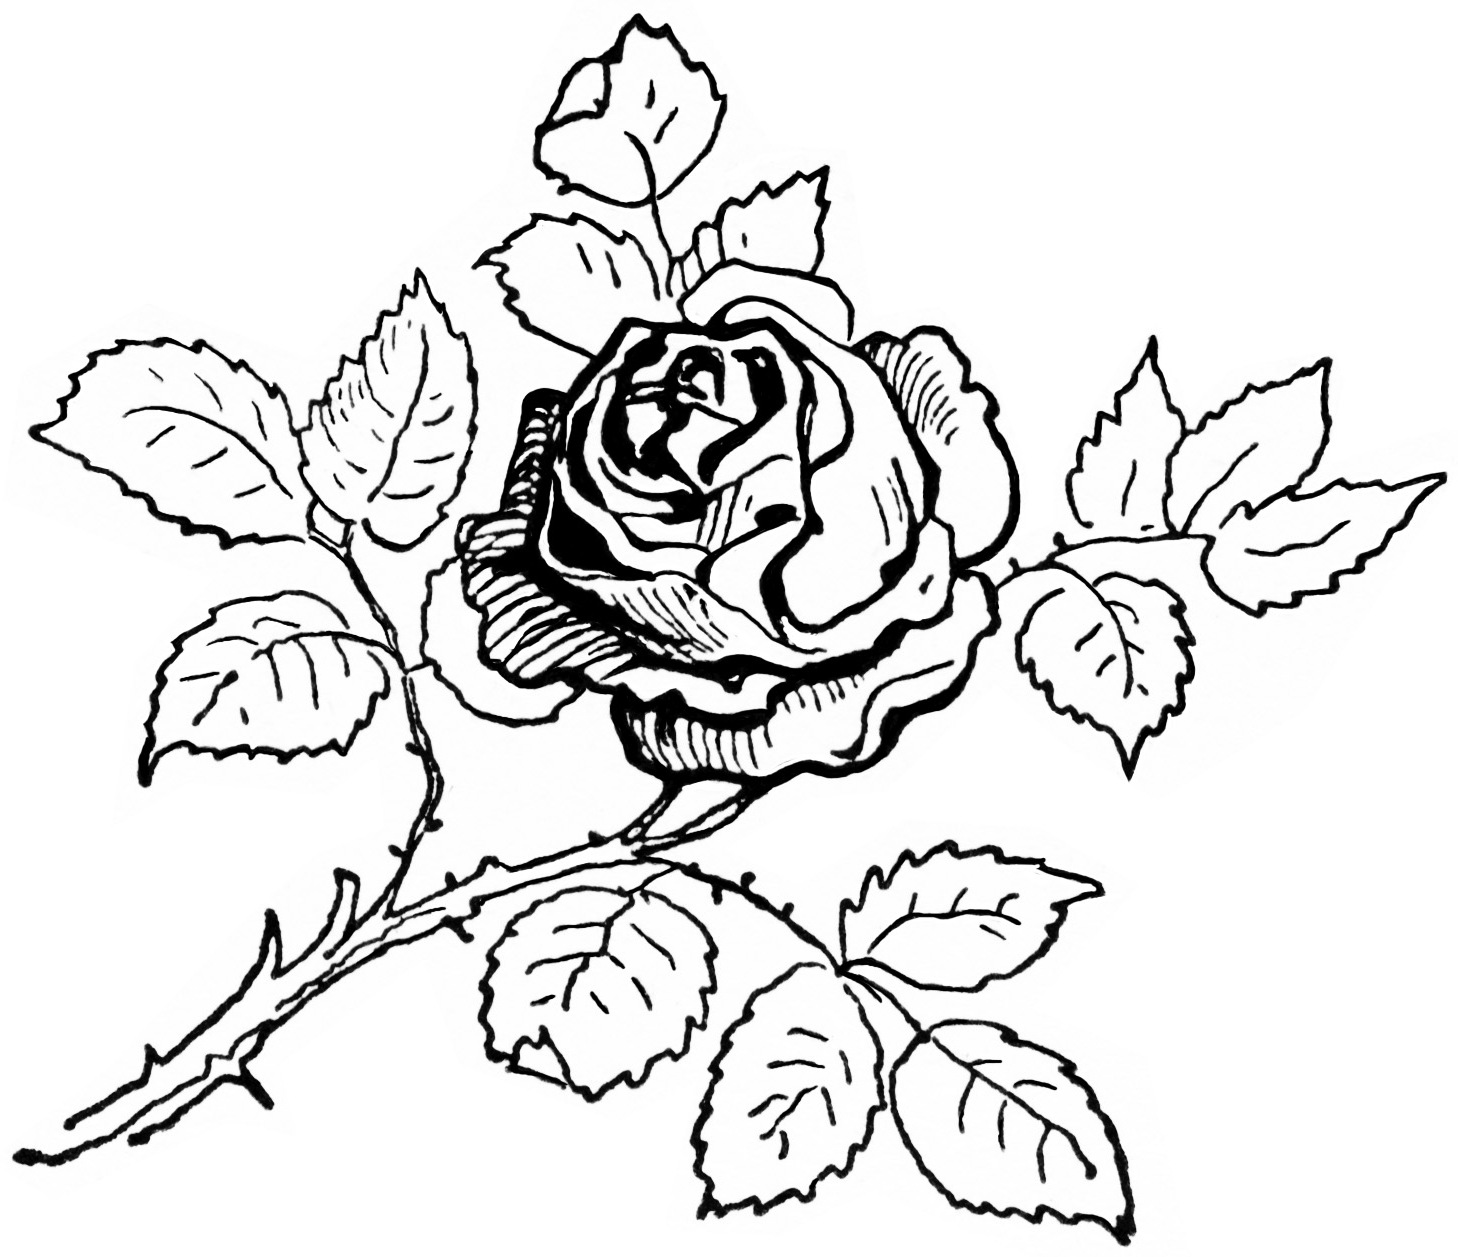 realistic rose flower coloring pages i have download the charming flower coloring page rose rose flower coloring pages realistic